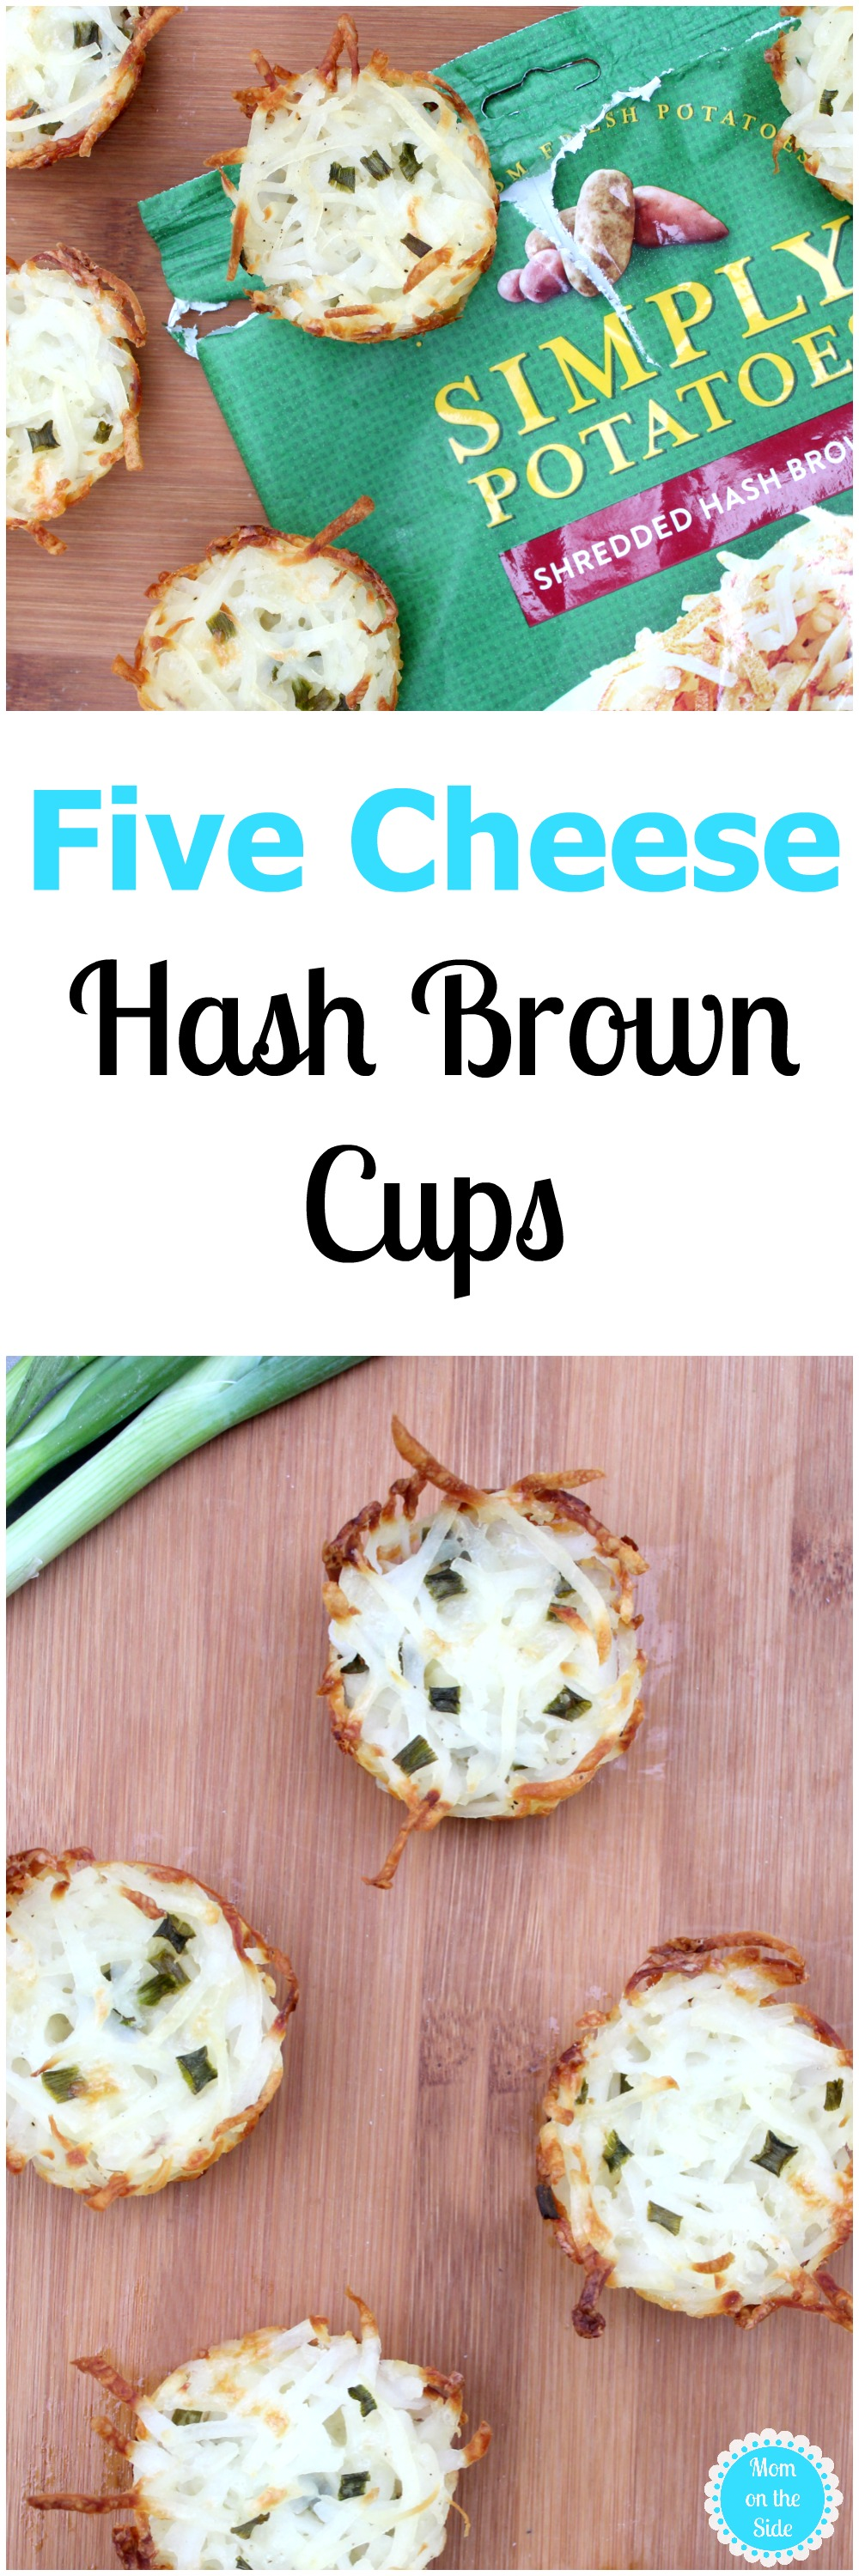 Easy Recipe for Five Cheese Hash Brown Cups with Simply Potatoes